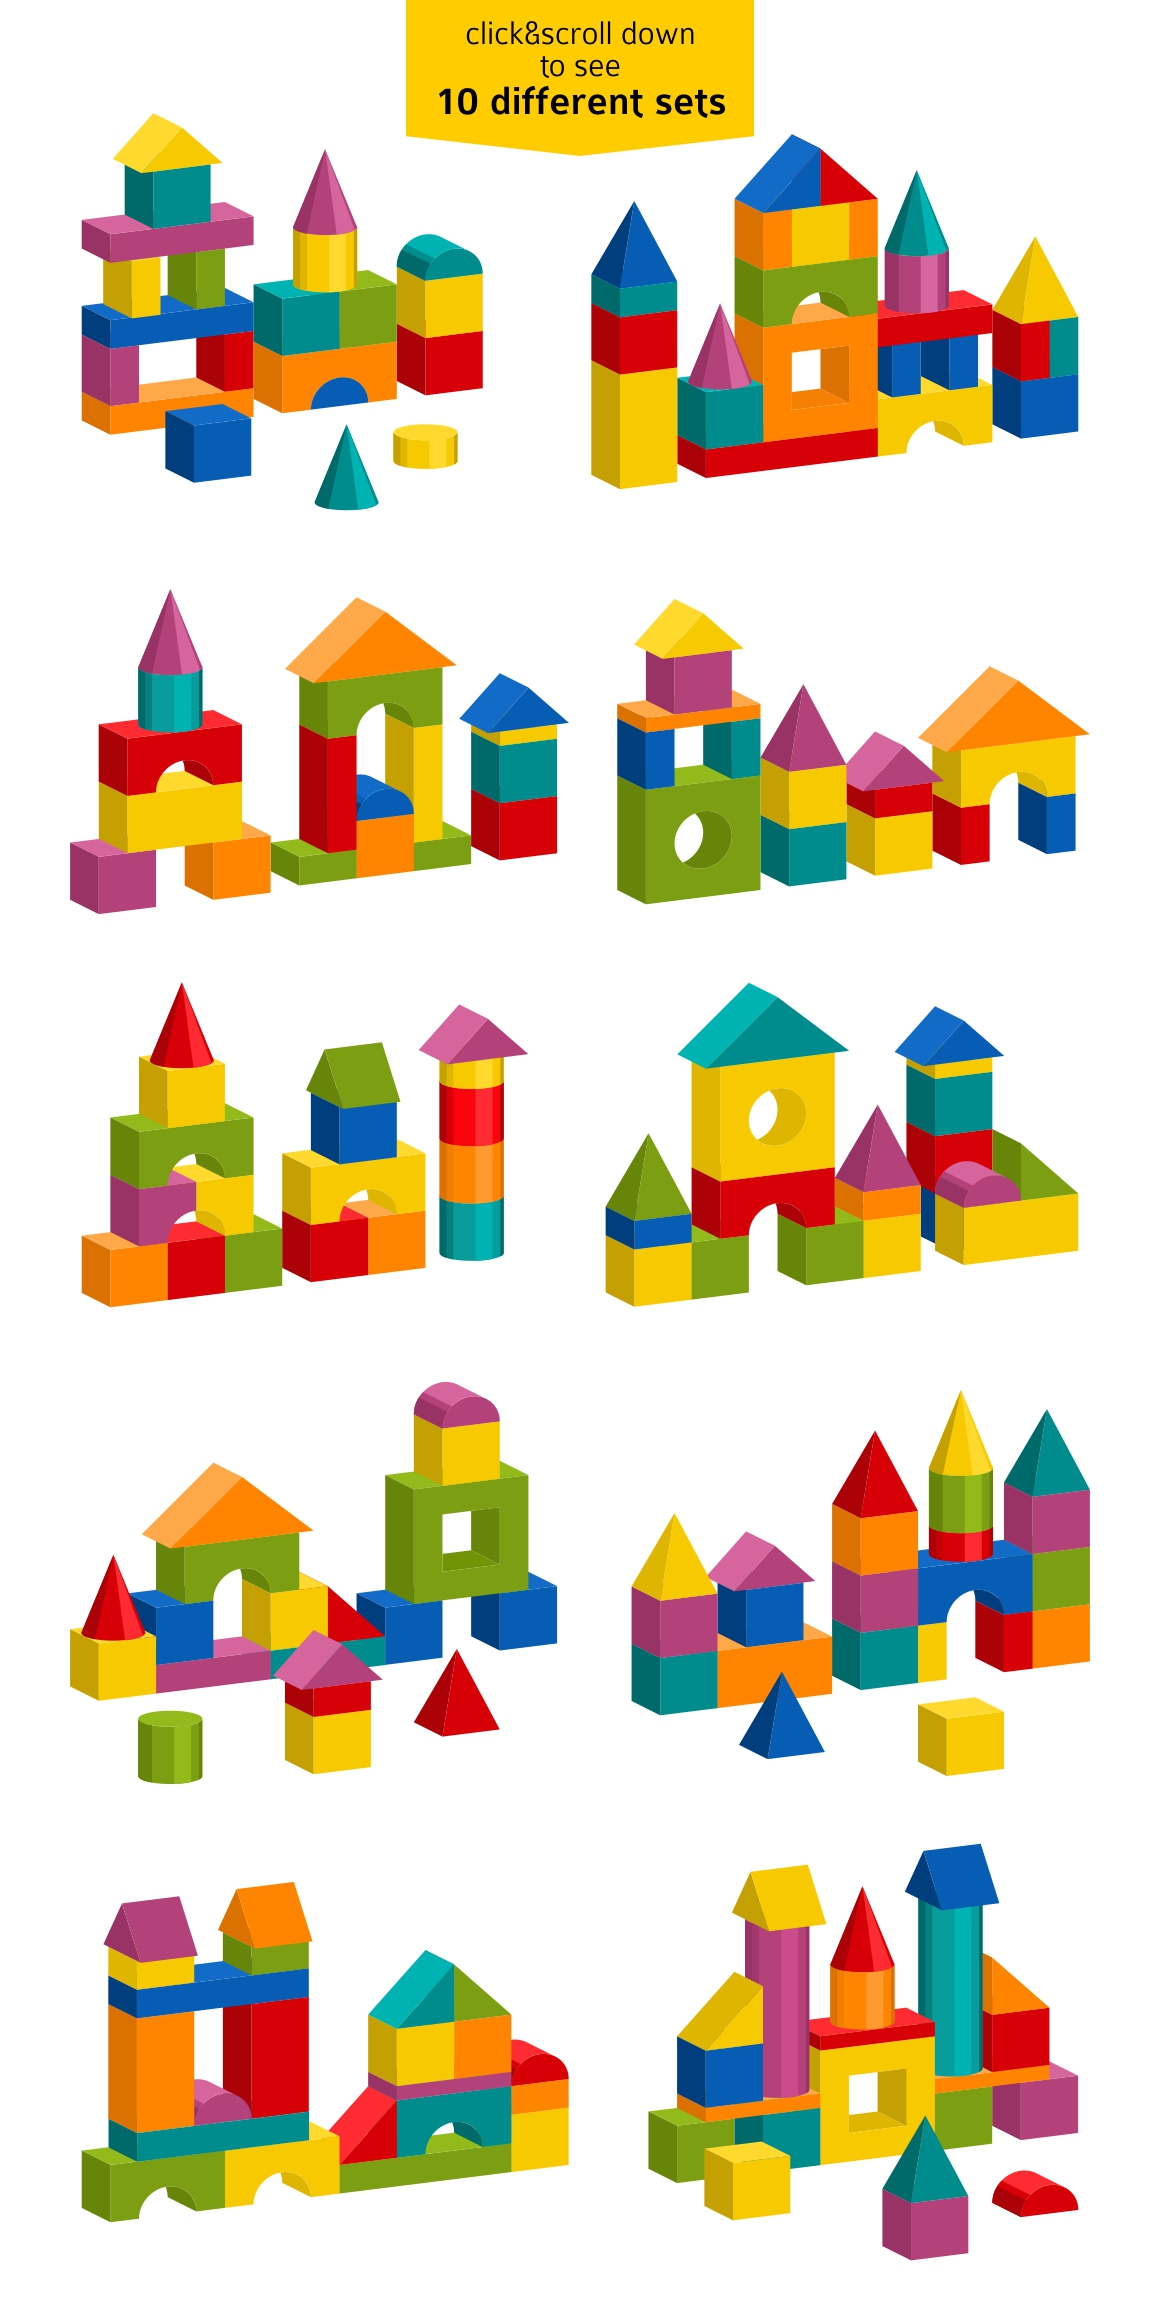 Toy blocks building towers example image 2